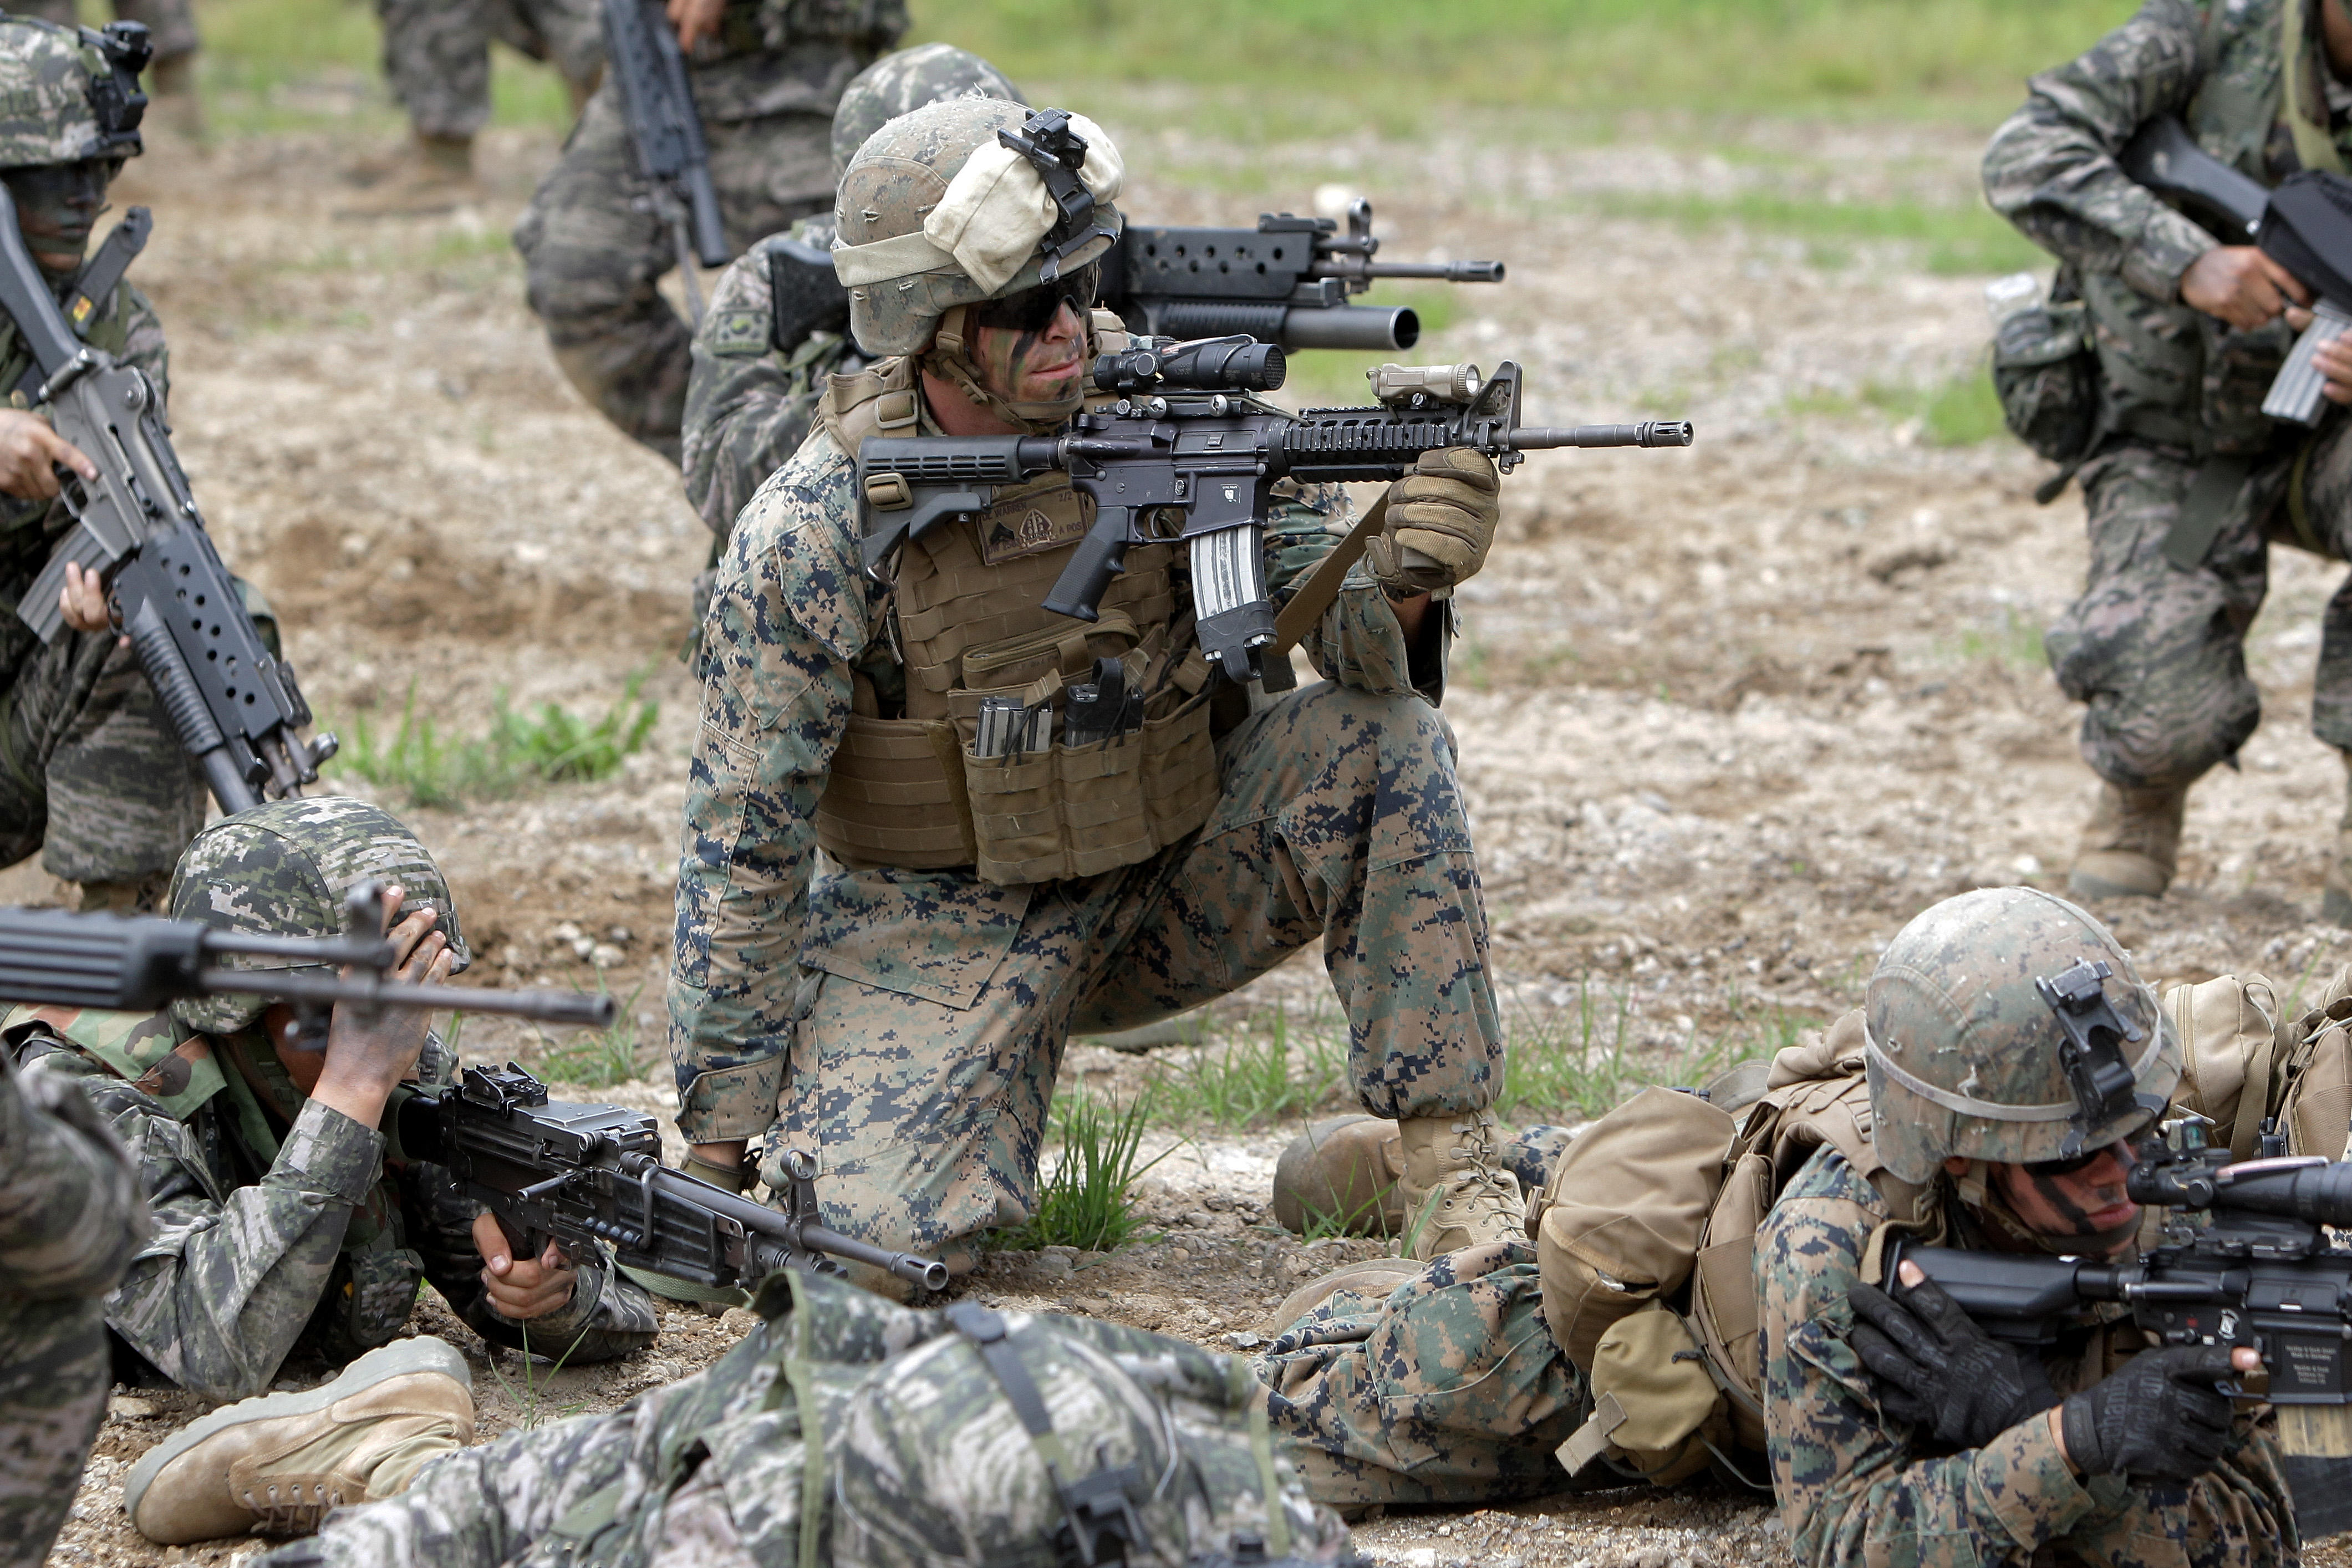 Women In Combat Testimony from a Marine Corps General's Opinion